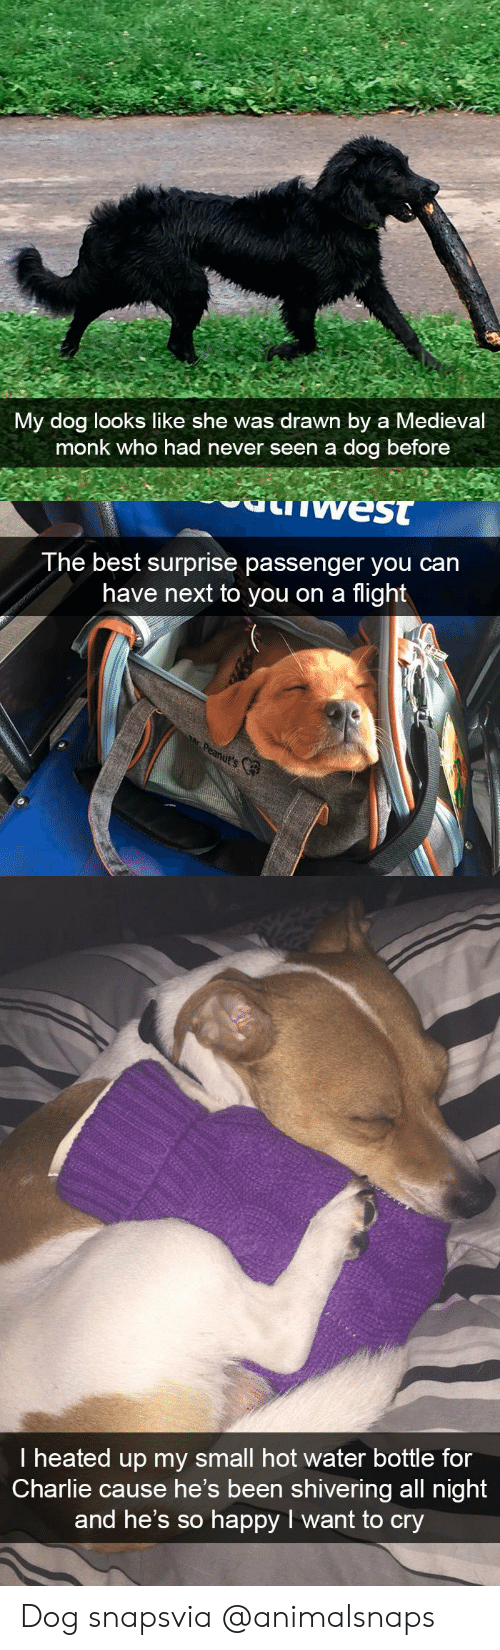 Charlie, Target, and Tumblr: My dog looks like she was drawn by a Medieval  monk who had never seen a dog before   west  The best surprise passenger you can  have next to you on a flight   I heated up my small hot water bottle for  Charlie cause he's been shivering all night  and he's so happy I want to cry Dog snapsvia @animalsnaps